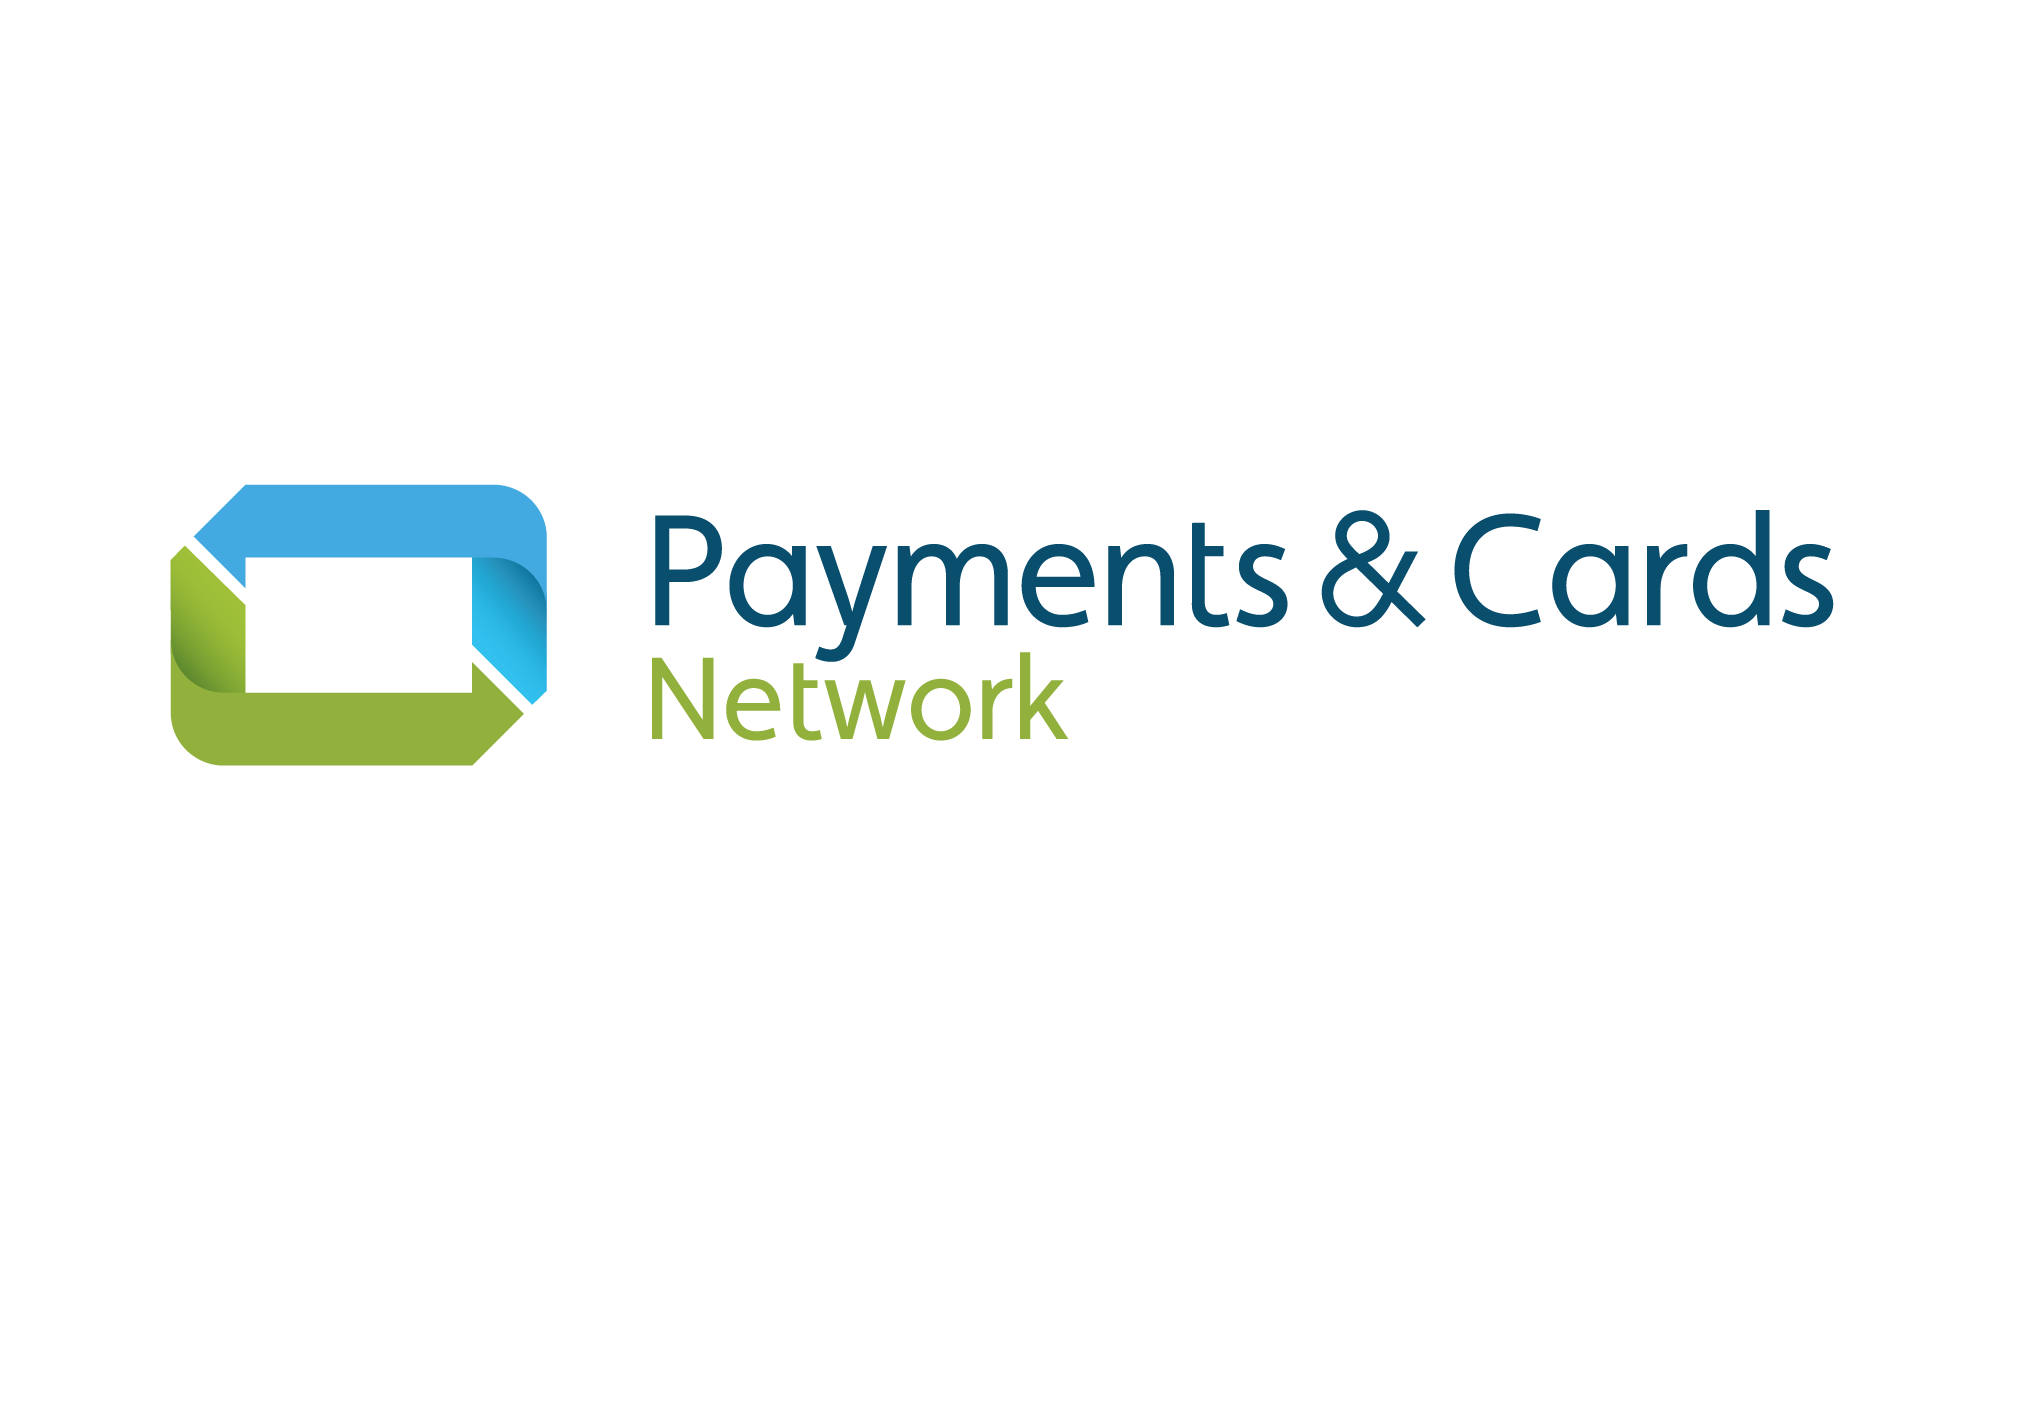 The Payments & Cards Network